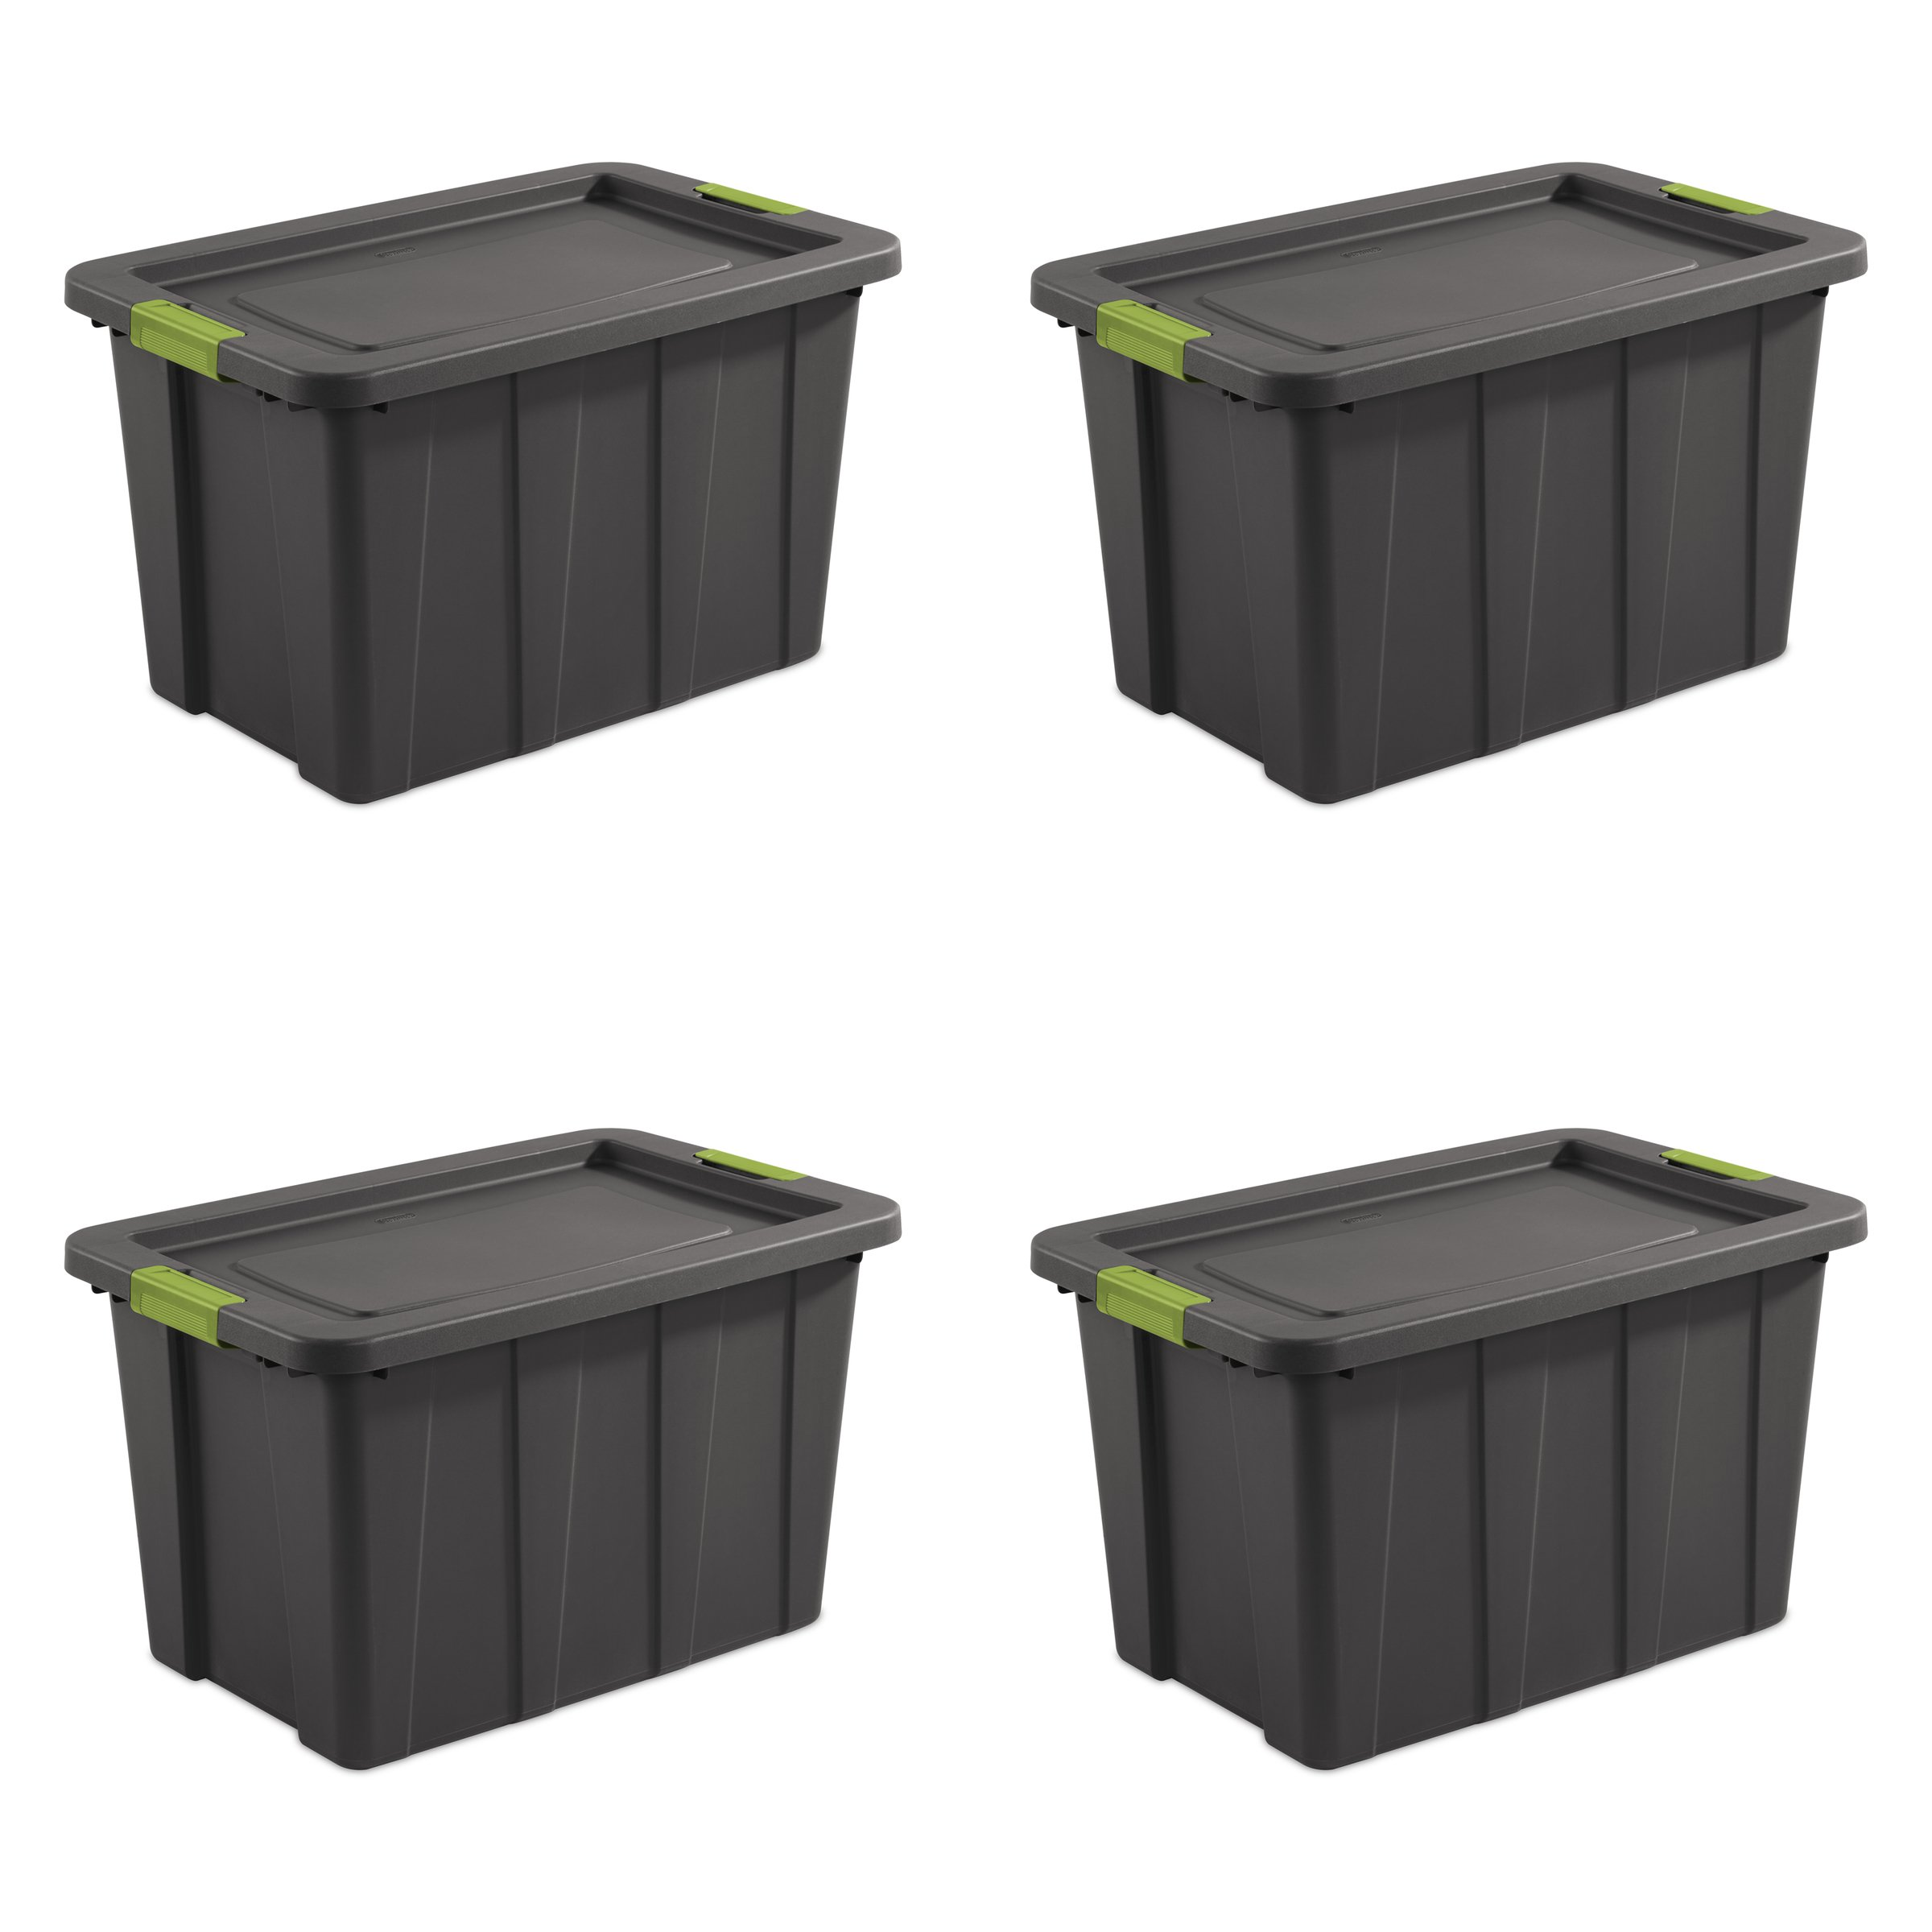 STERILITE 15273V04 30 gallon/114 L Latching Tuff1 Tote (4 Pack)